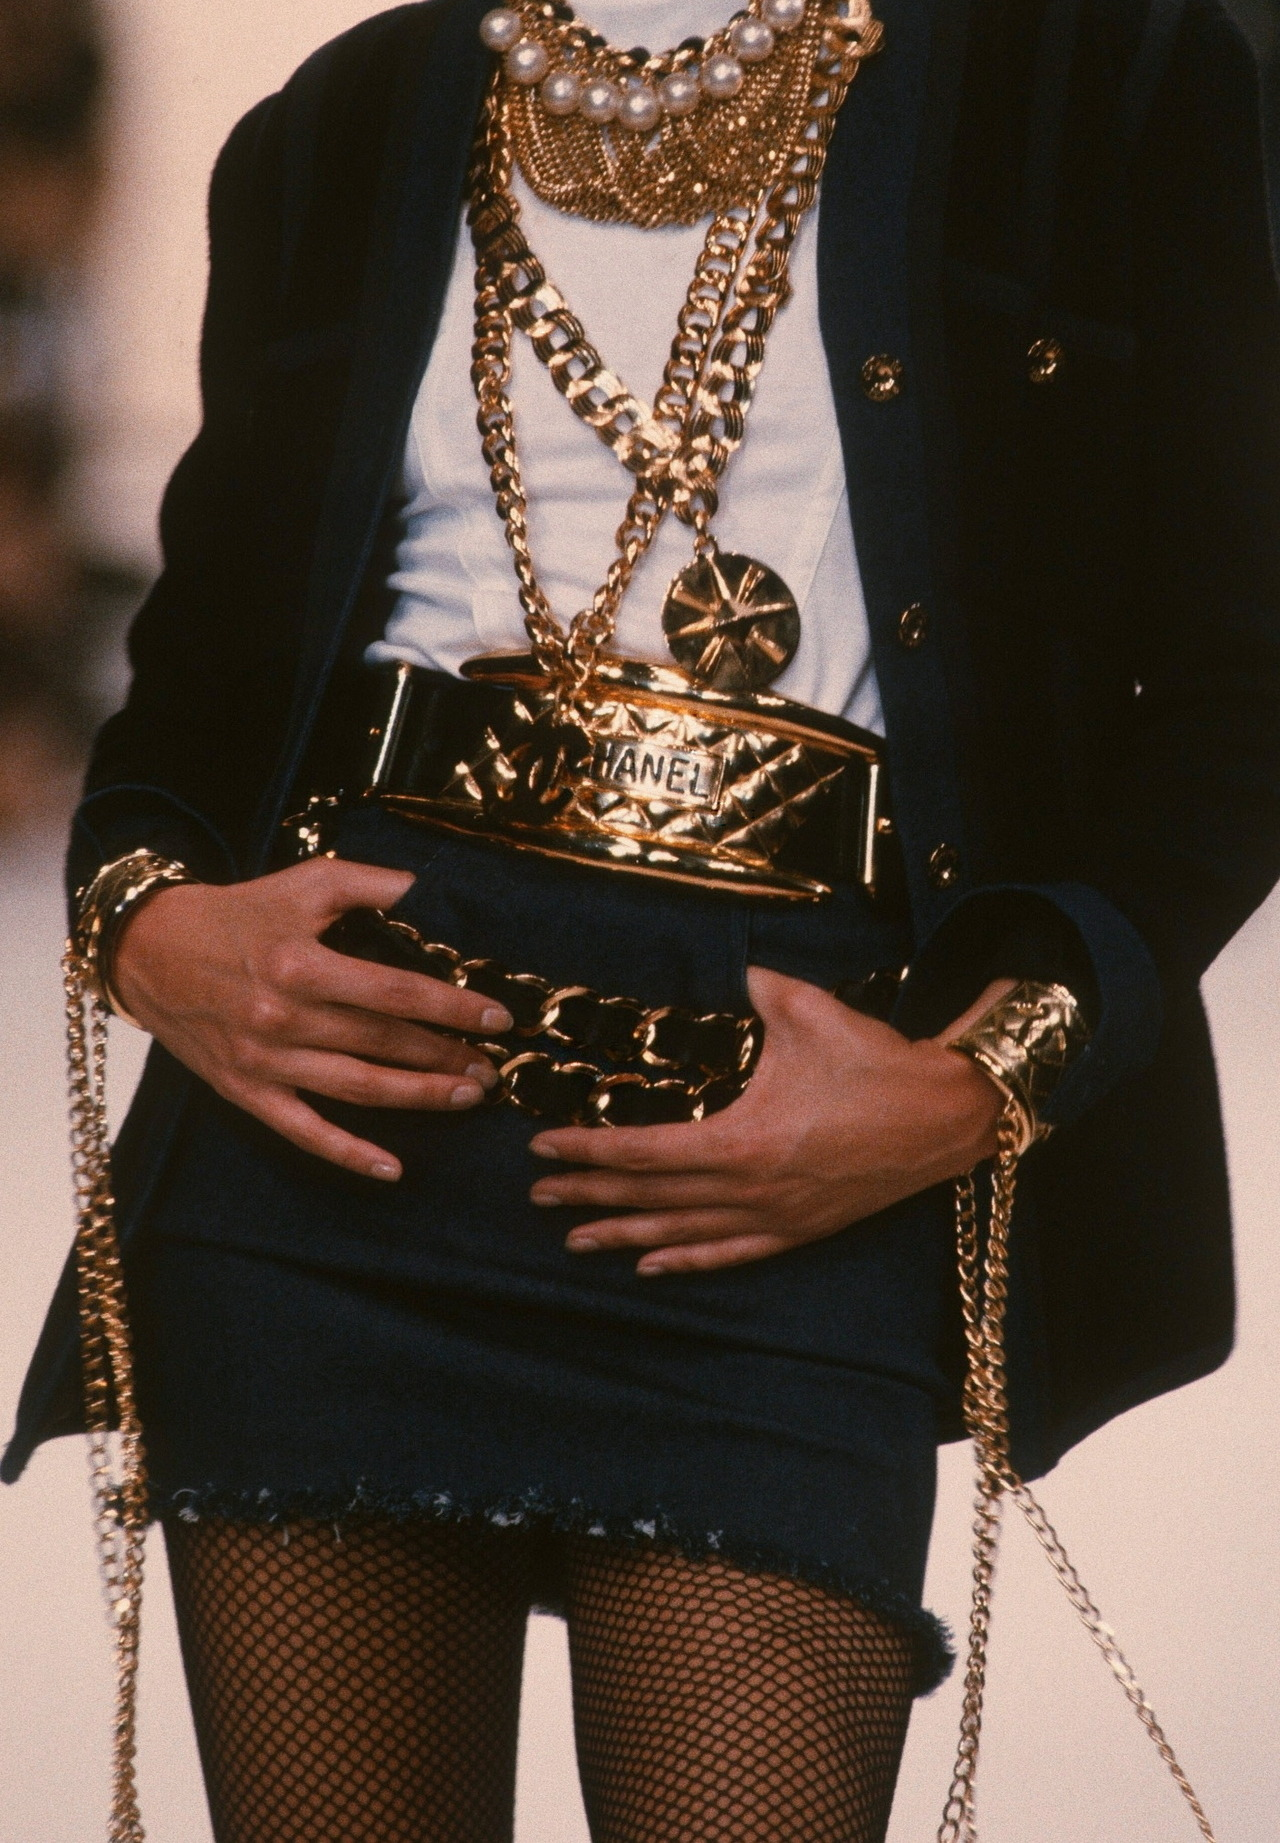 runwaydoll-chanel-1993